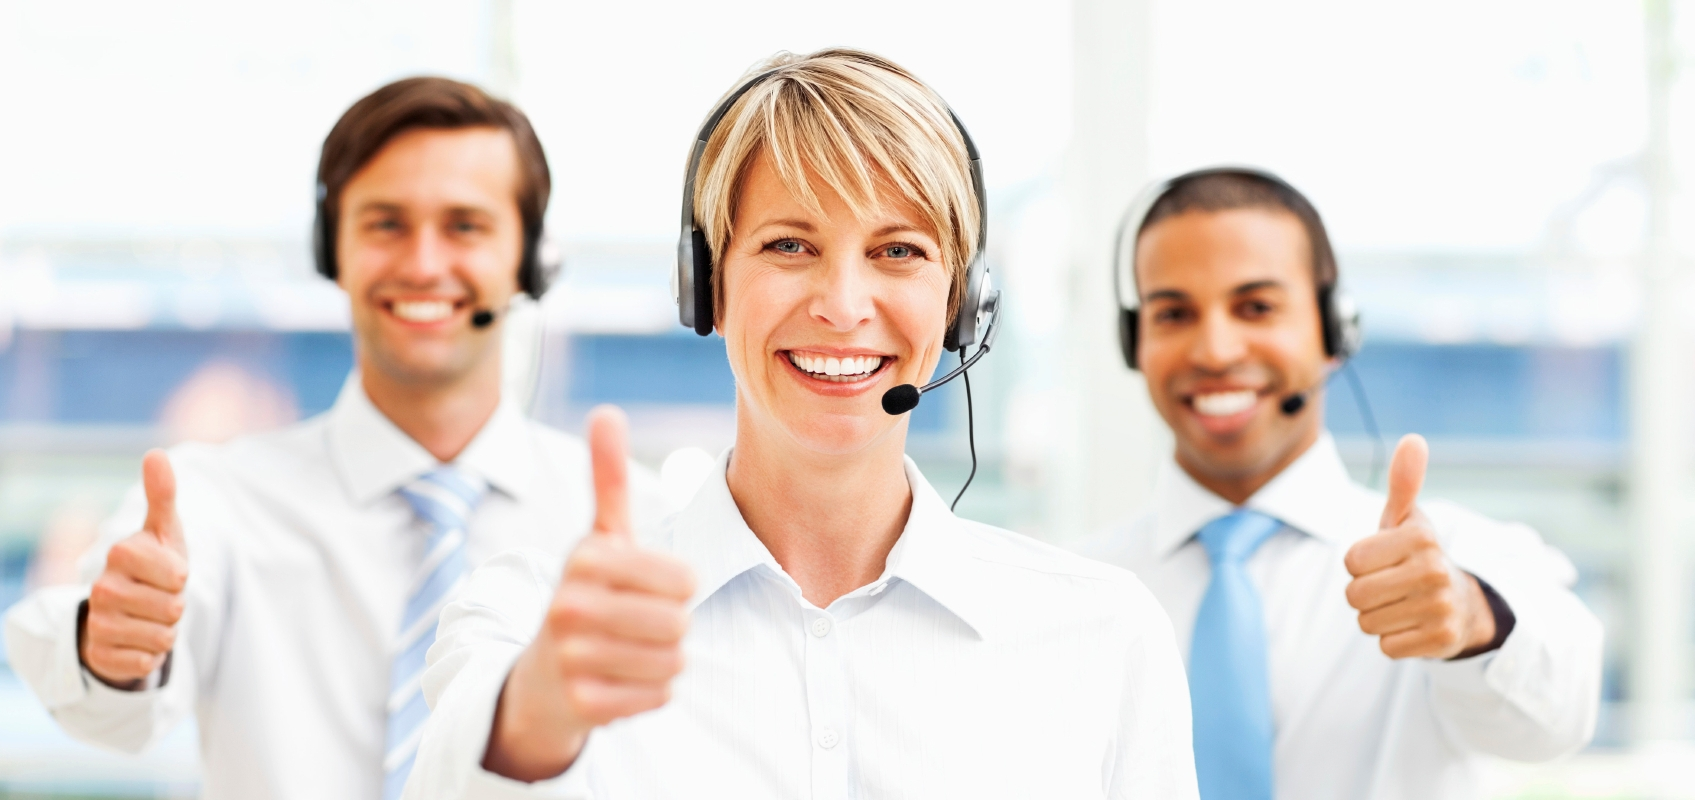 Customer Service 3 – Handling Problems with Ease